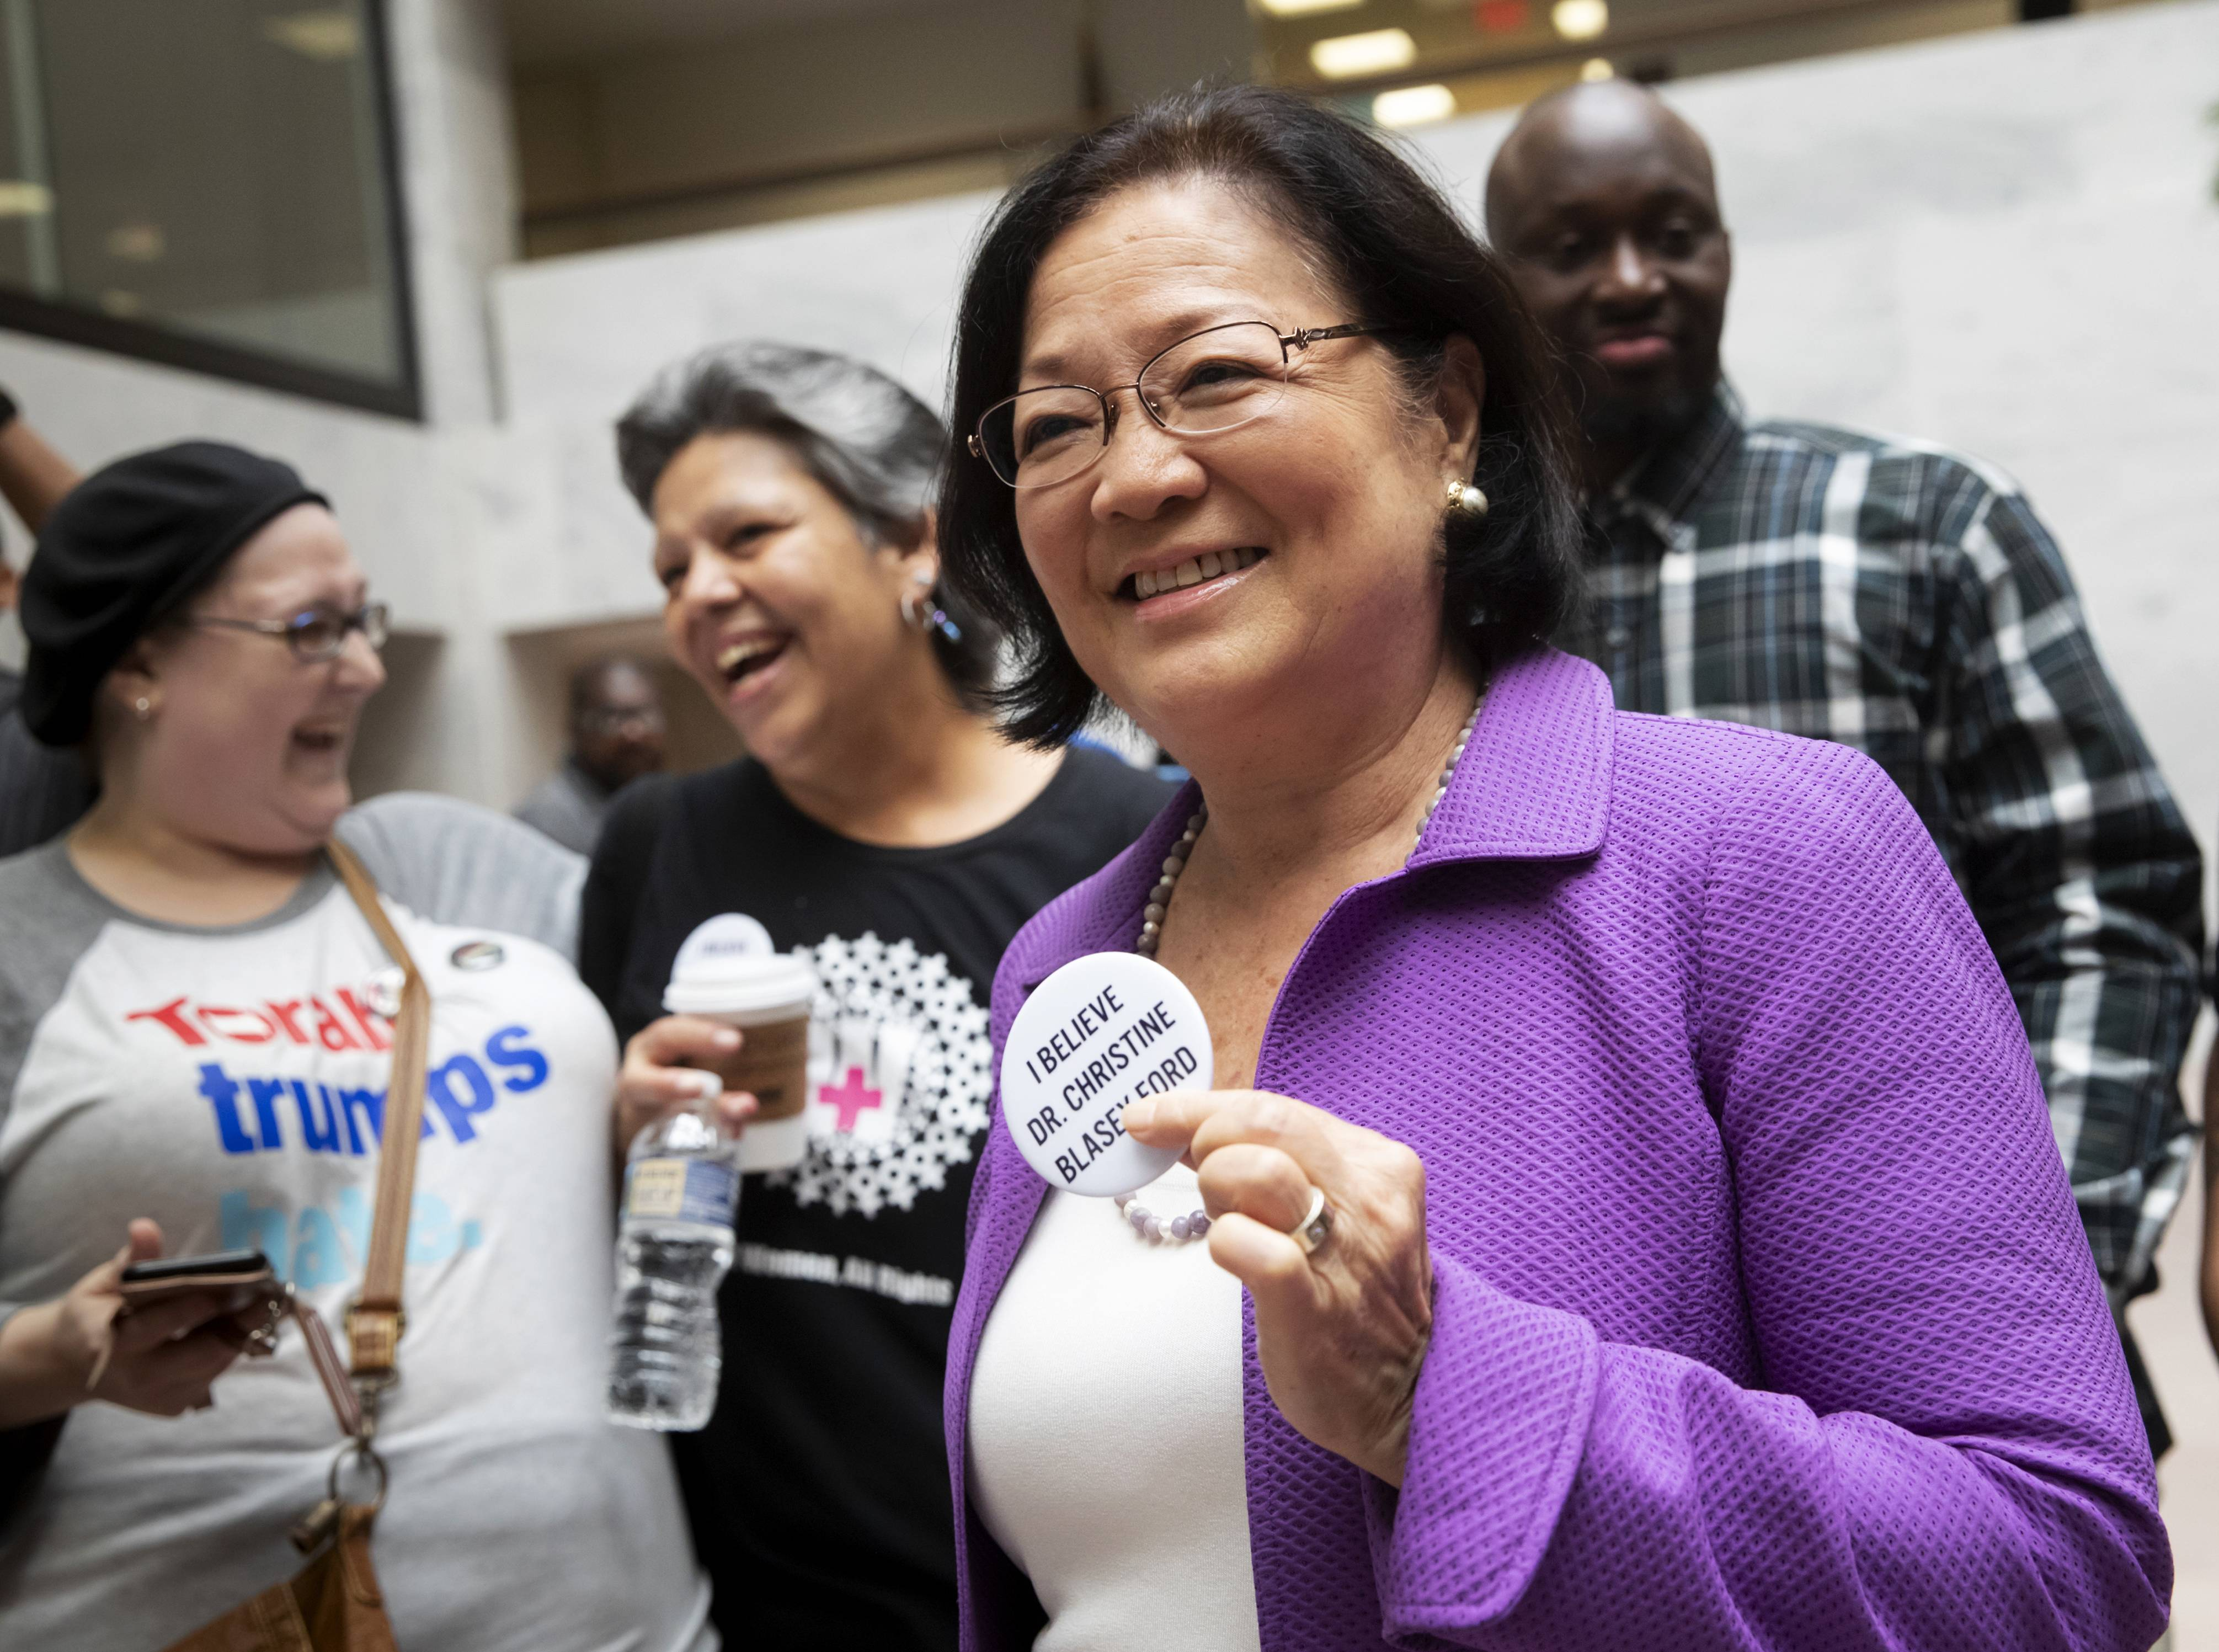 Sen. Mazie Hirono, D-Hawaii, a member of the Senate Judiciary Committee, is welcomed by protesters opposed to President Donald Trump's Supreme Court nominee, Brett Kavanaugh, as they demonstrate in the Hart Senate Office Building on Capitol Hill in Washington, Thursday, Sept. 20, 2018. Kavanaugh has denied stories of a sexual assault as alleged by California college professor Christine Blasey Ford.